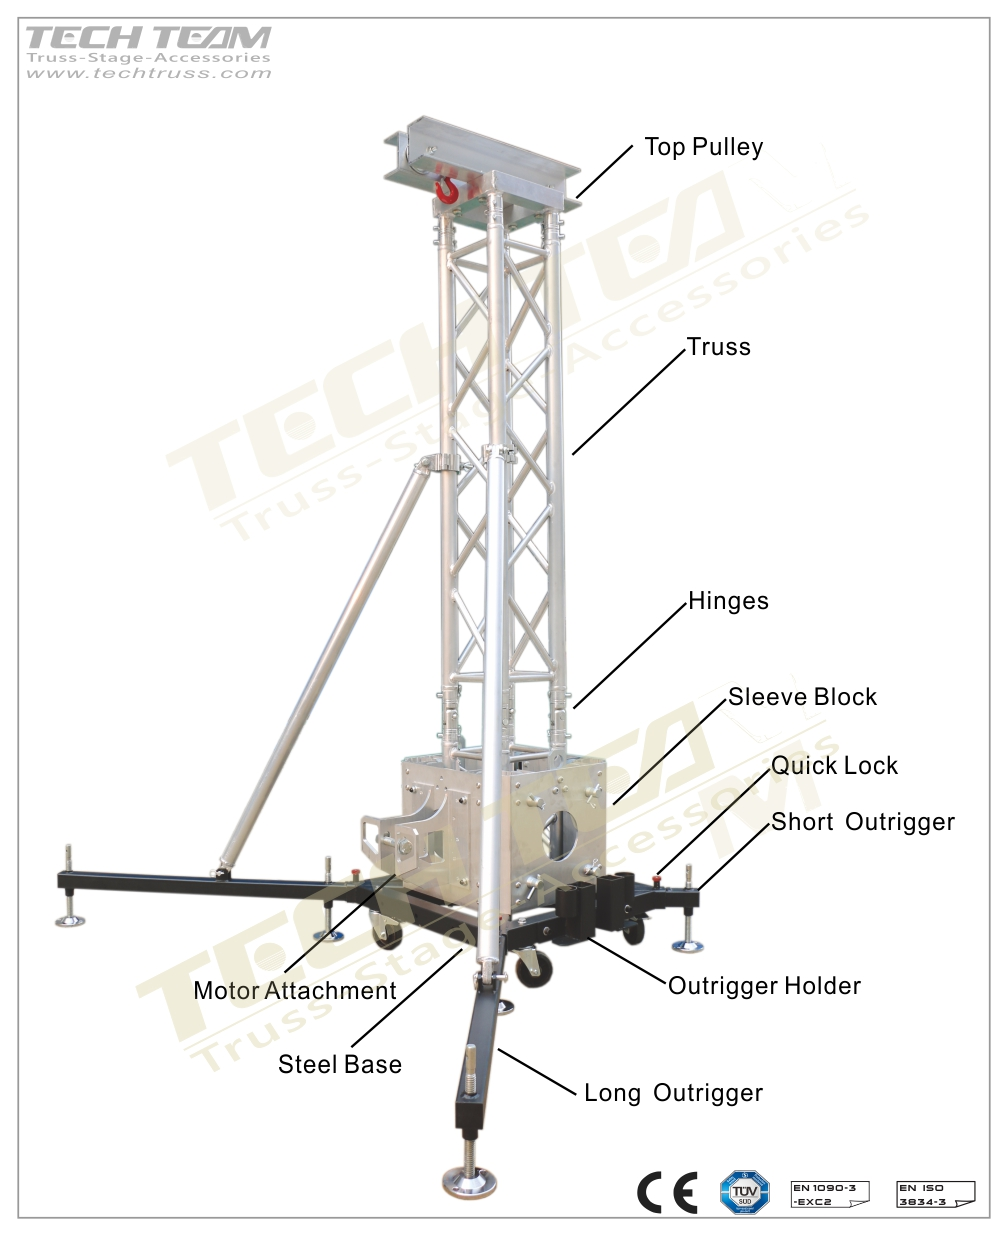 MPT-30G Tower (New)